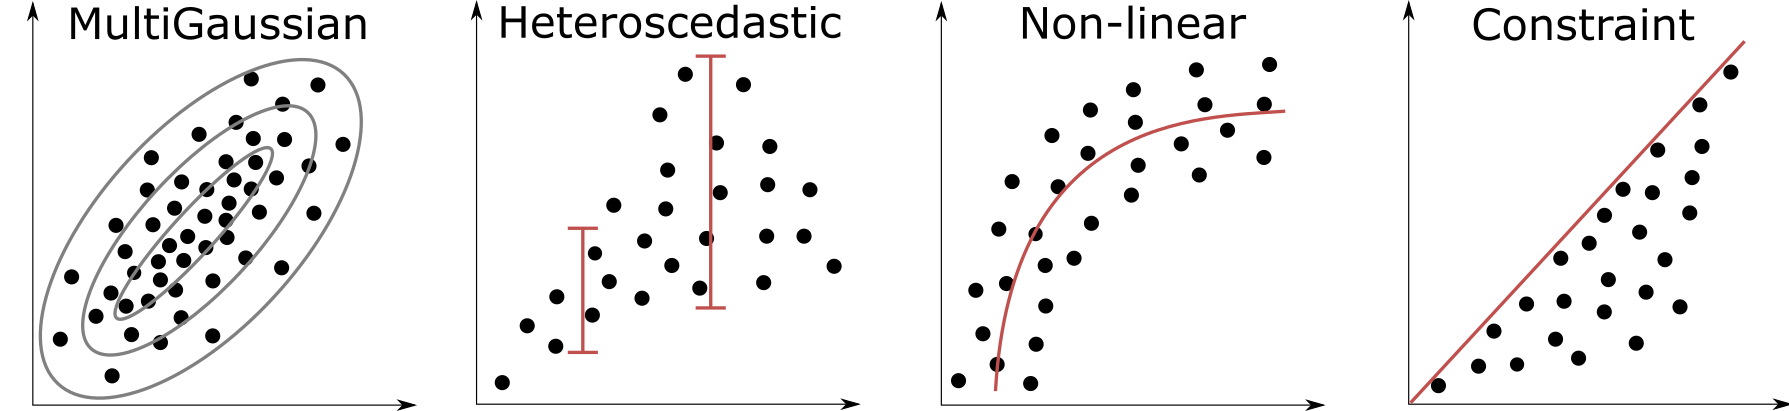 Schematic illustration of bivariate complexities.